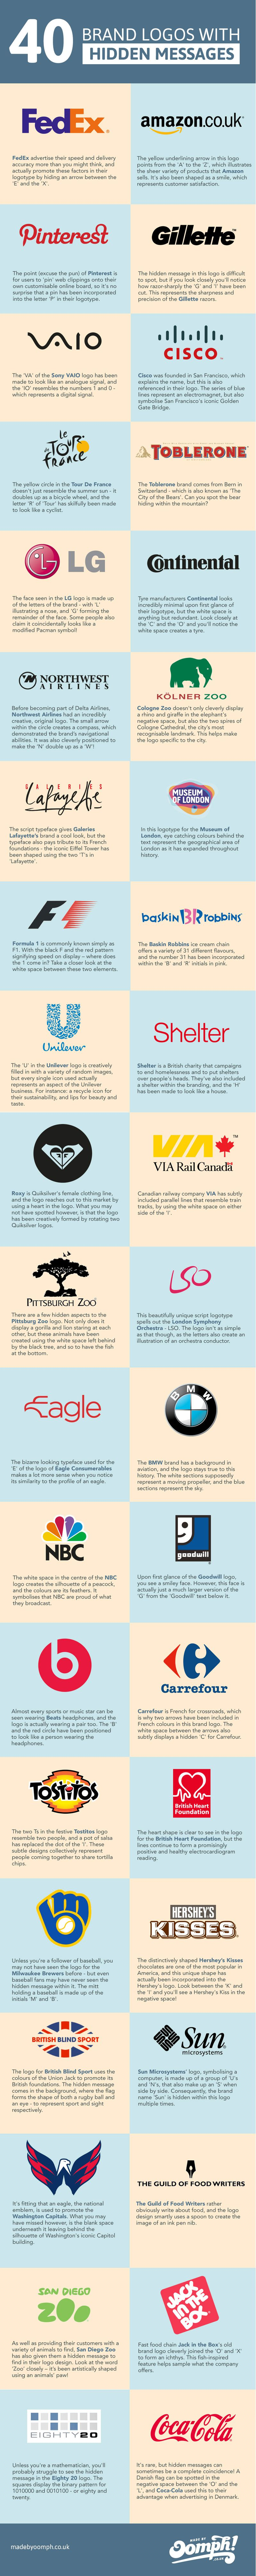 Oomph infographic on brand logos with hidden messages